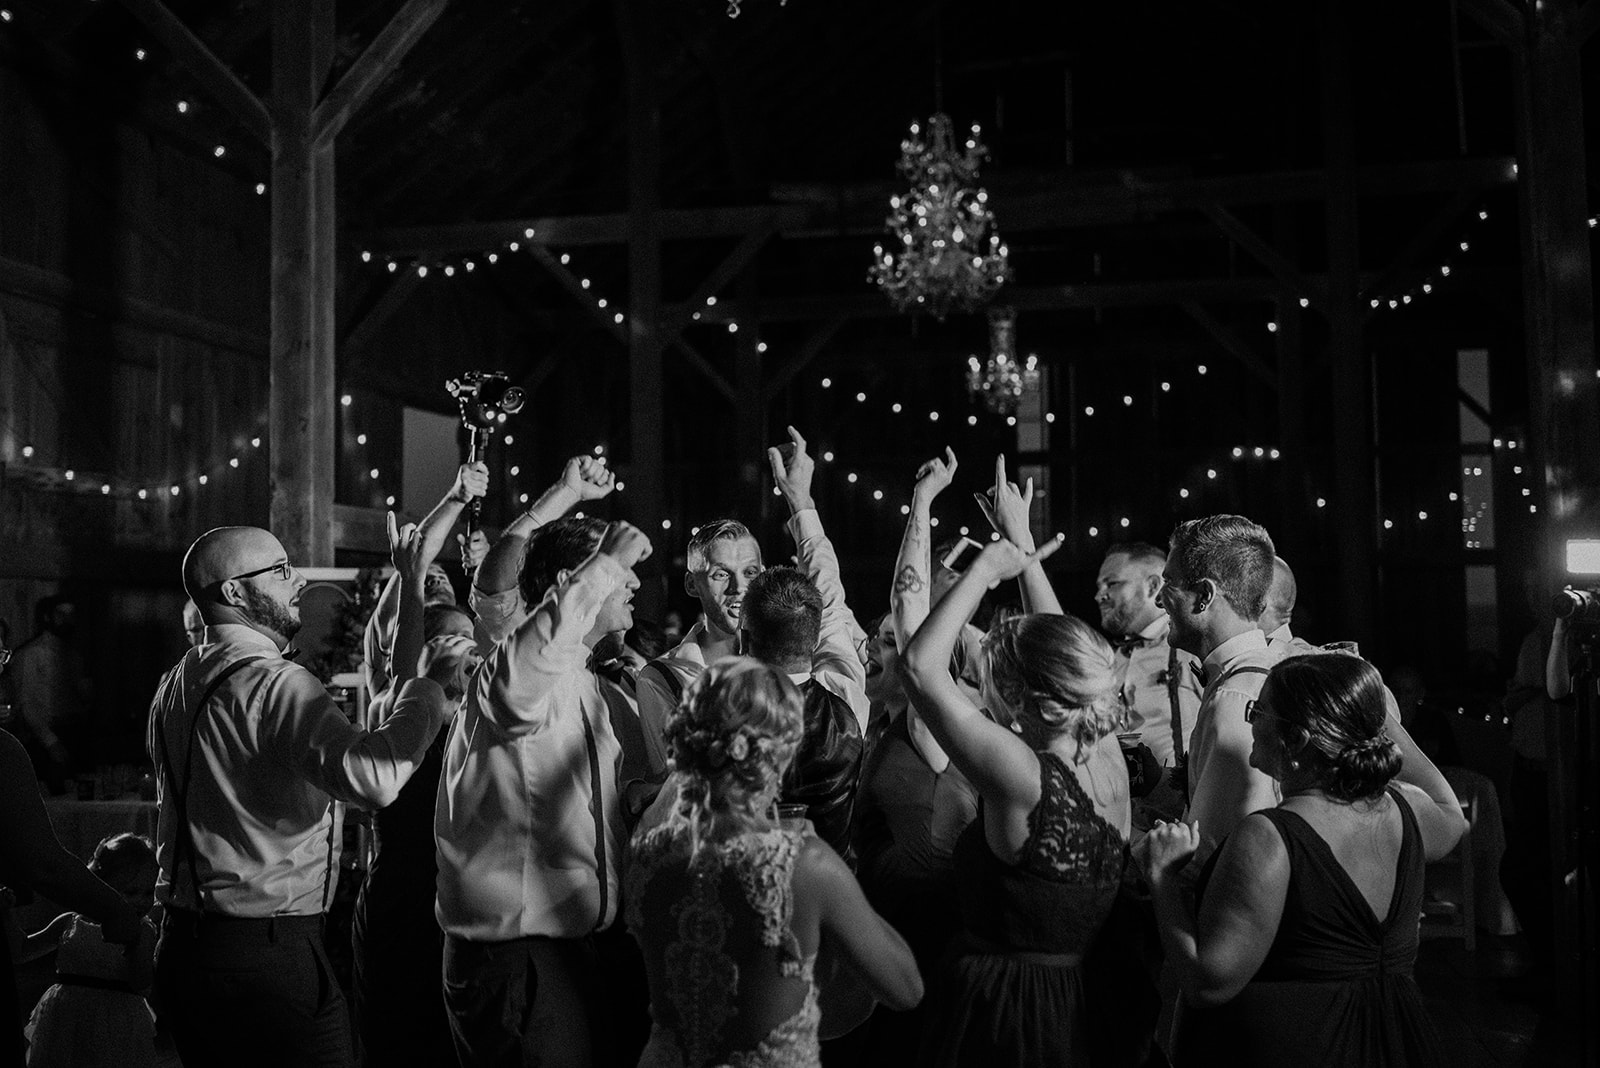 overthevineswisconsinwedding_1352.jpg